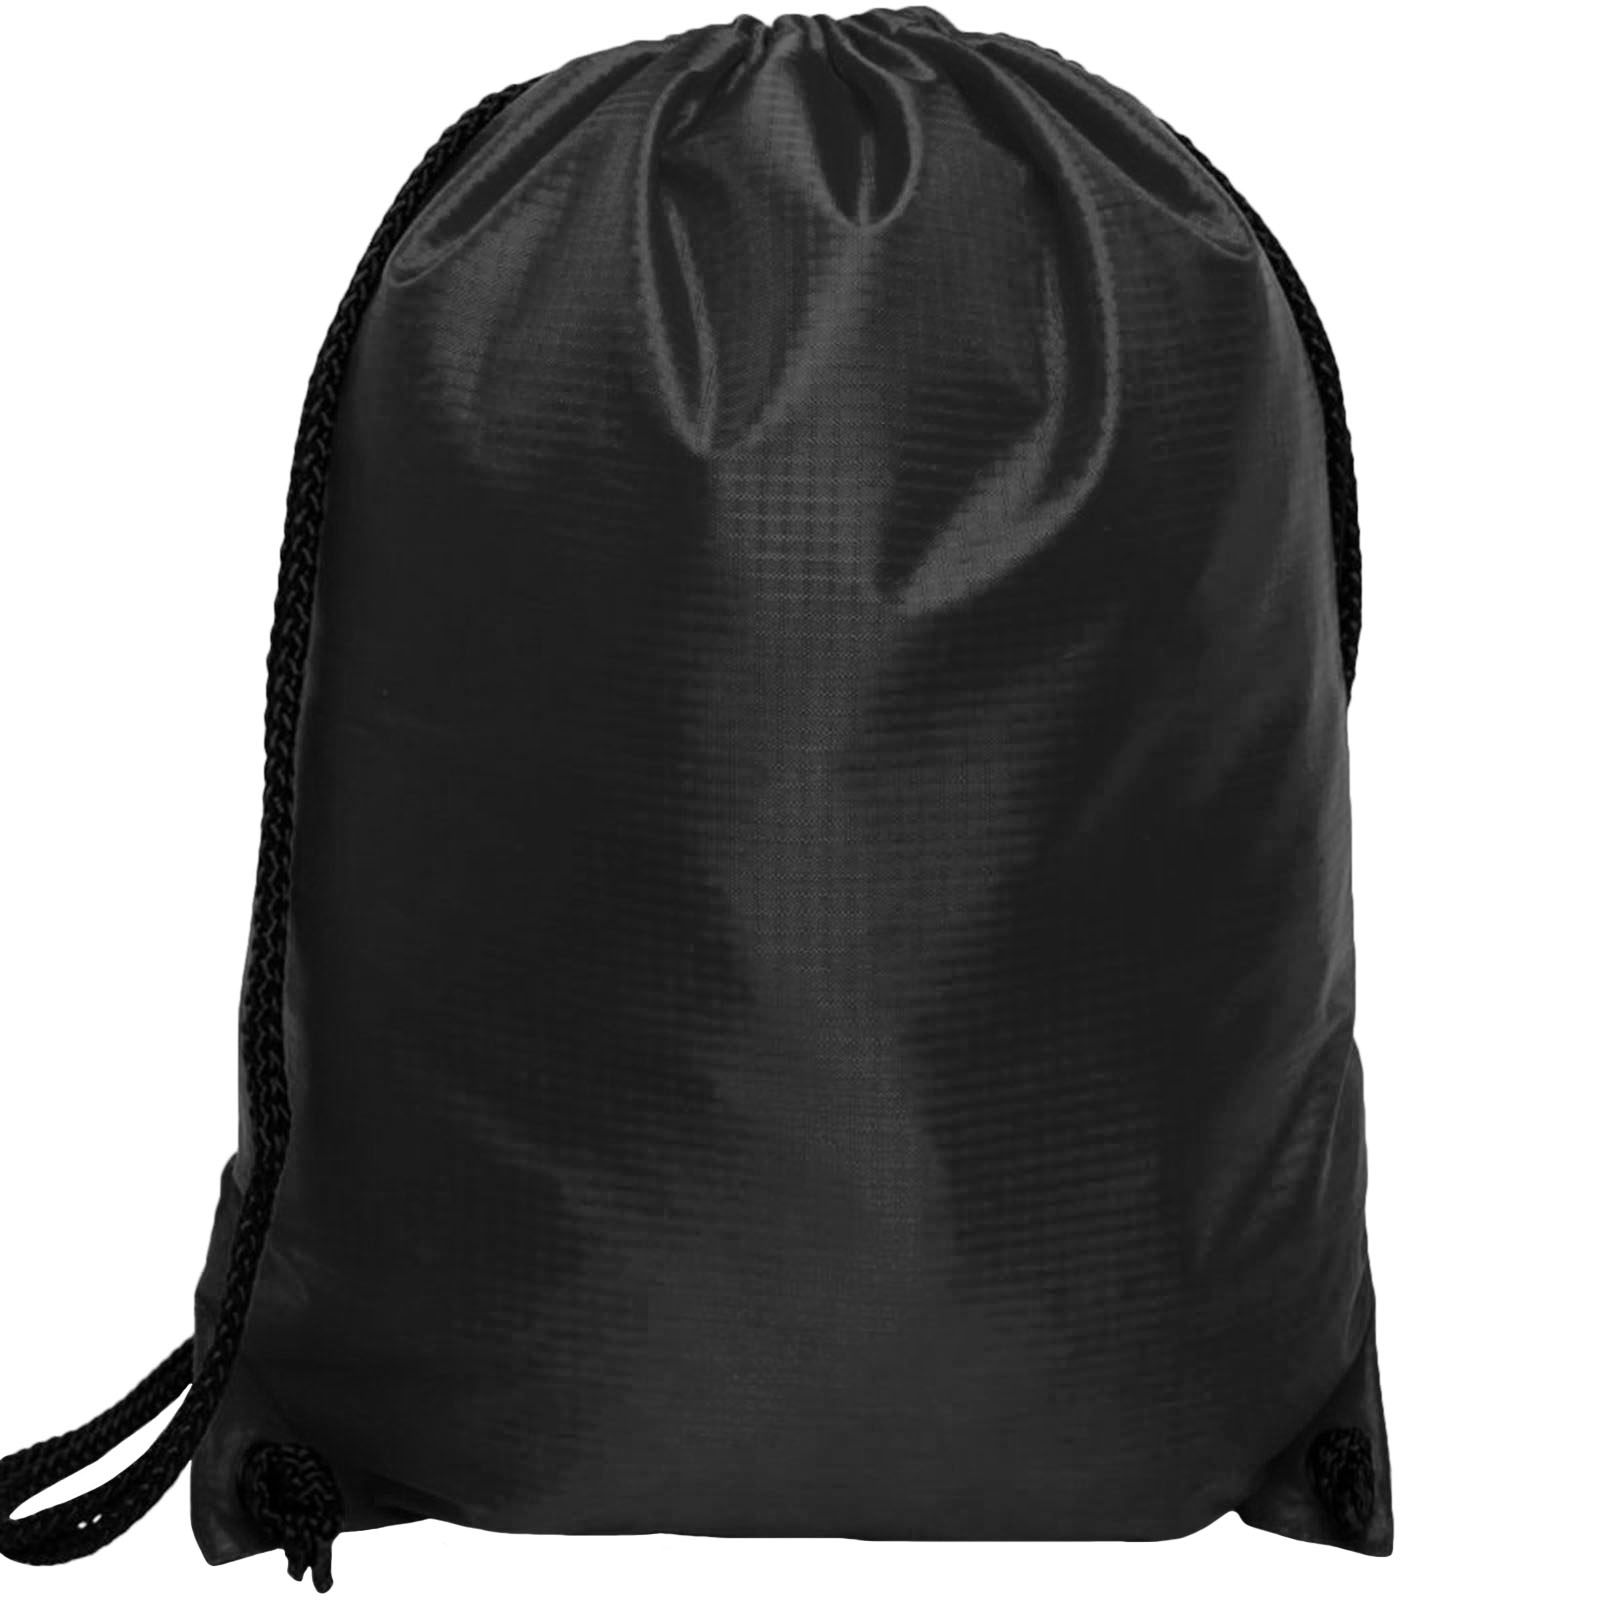 thumbnail 3 - Vans Unisex Benched Travel Sports Gym School Drawstring Cinched Backpack Bag